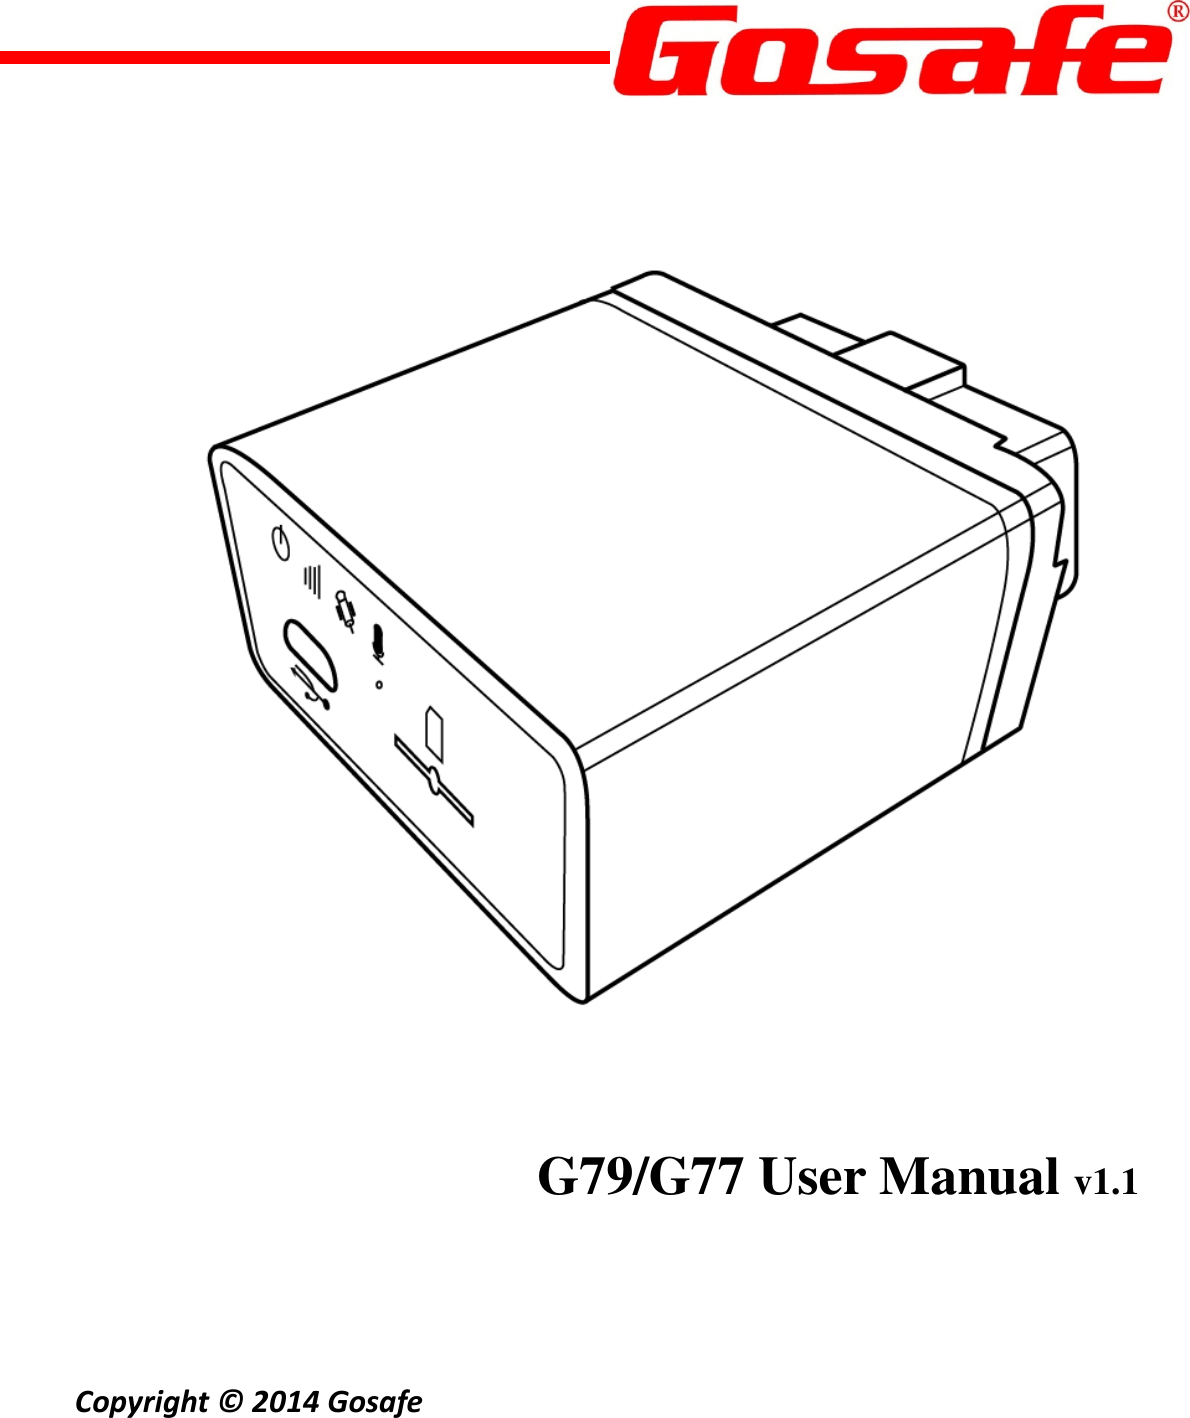 Gosafe G-G797-777 GPS Tracker User Manual G79 G77 V1 1 2 x